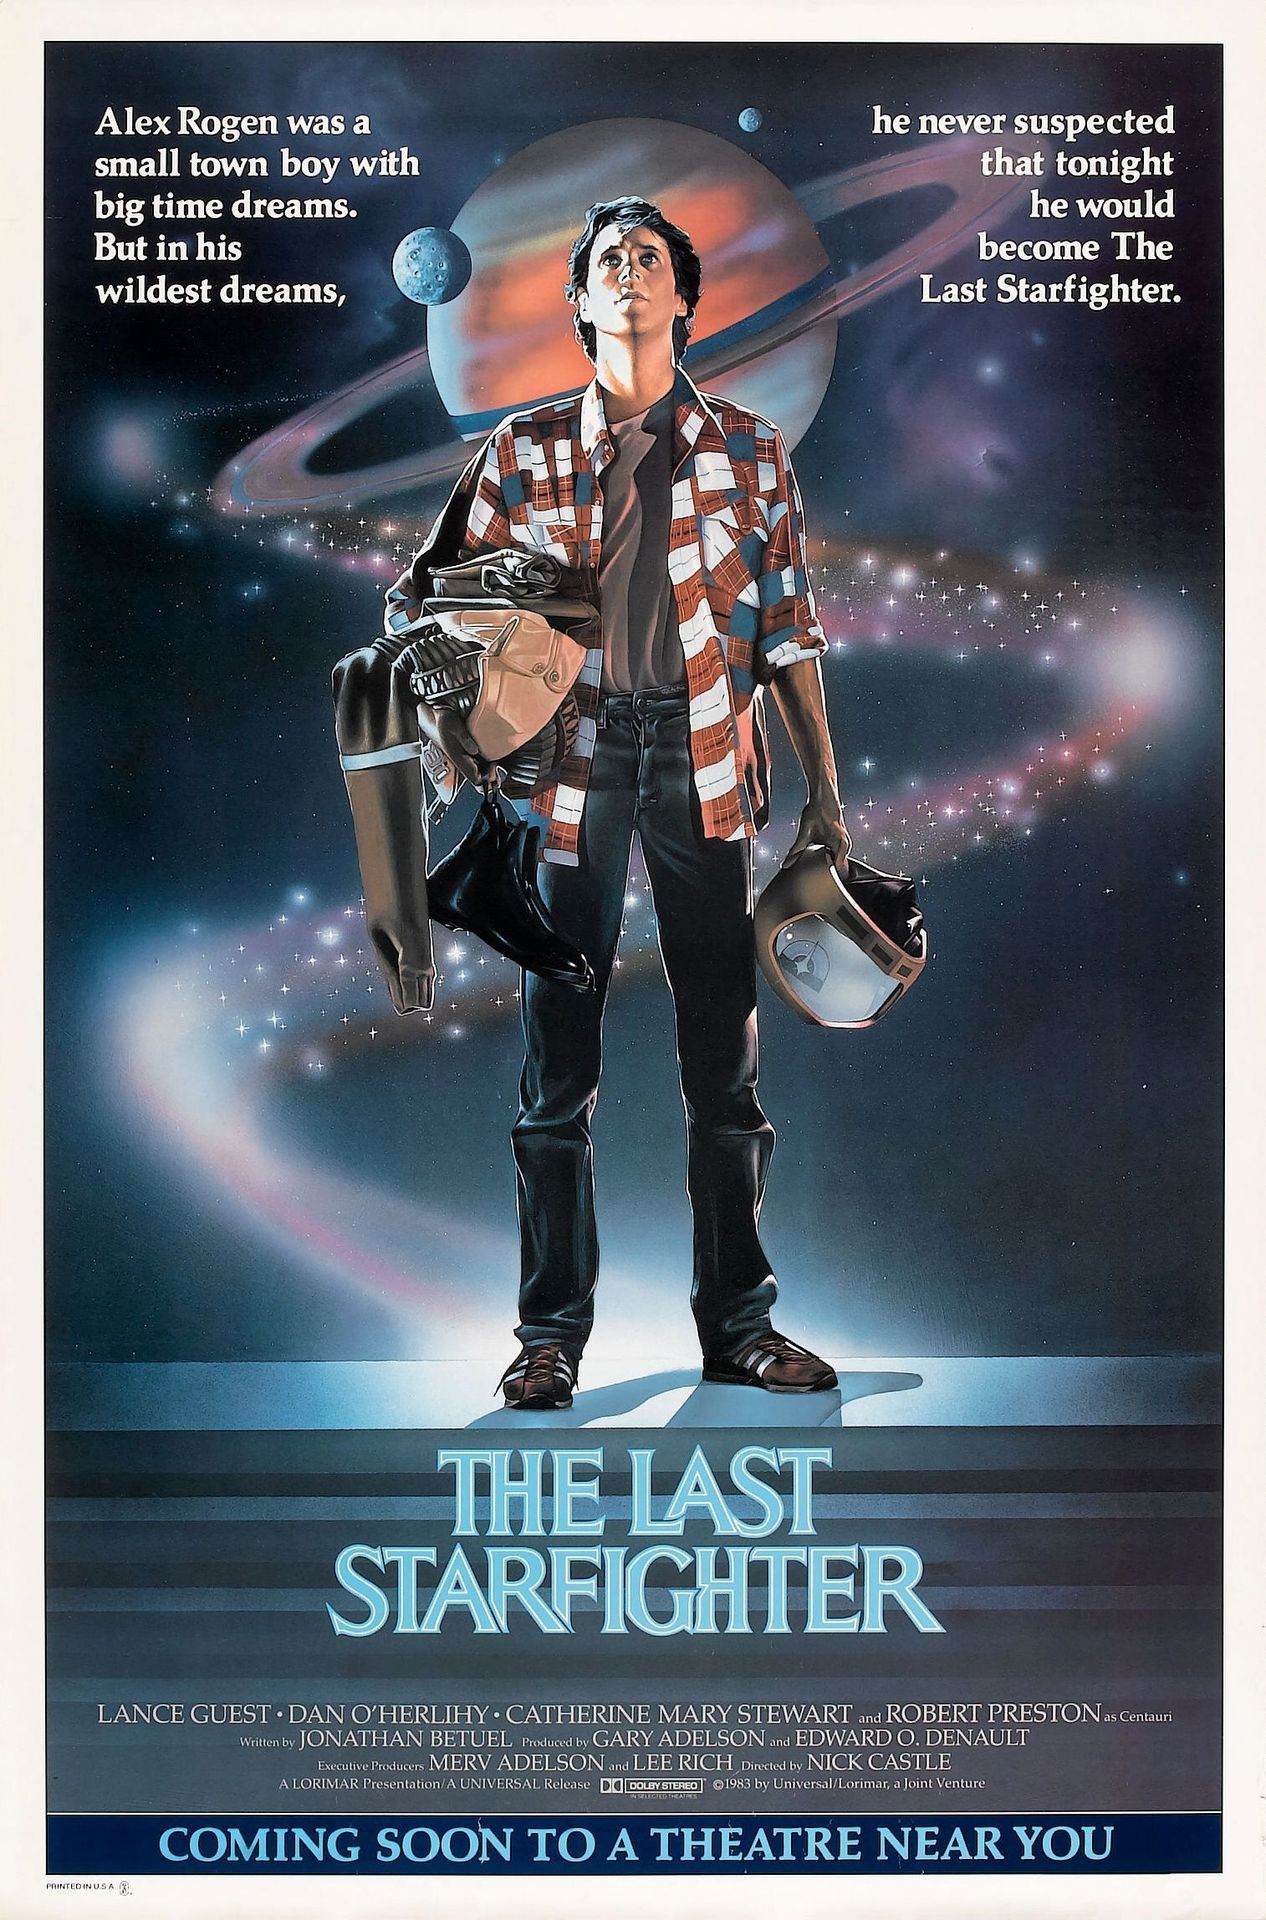 At least The Last Starfighter makes being sick worth while.